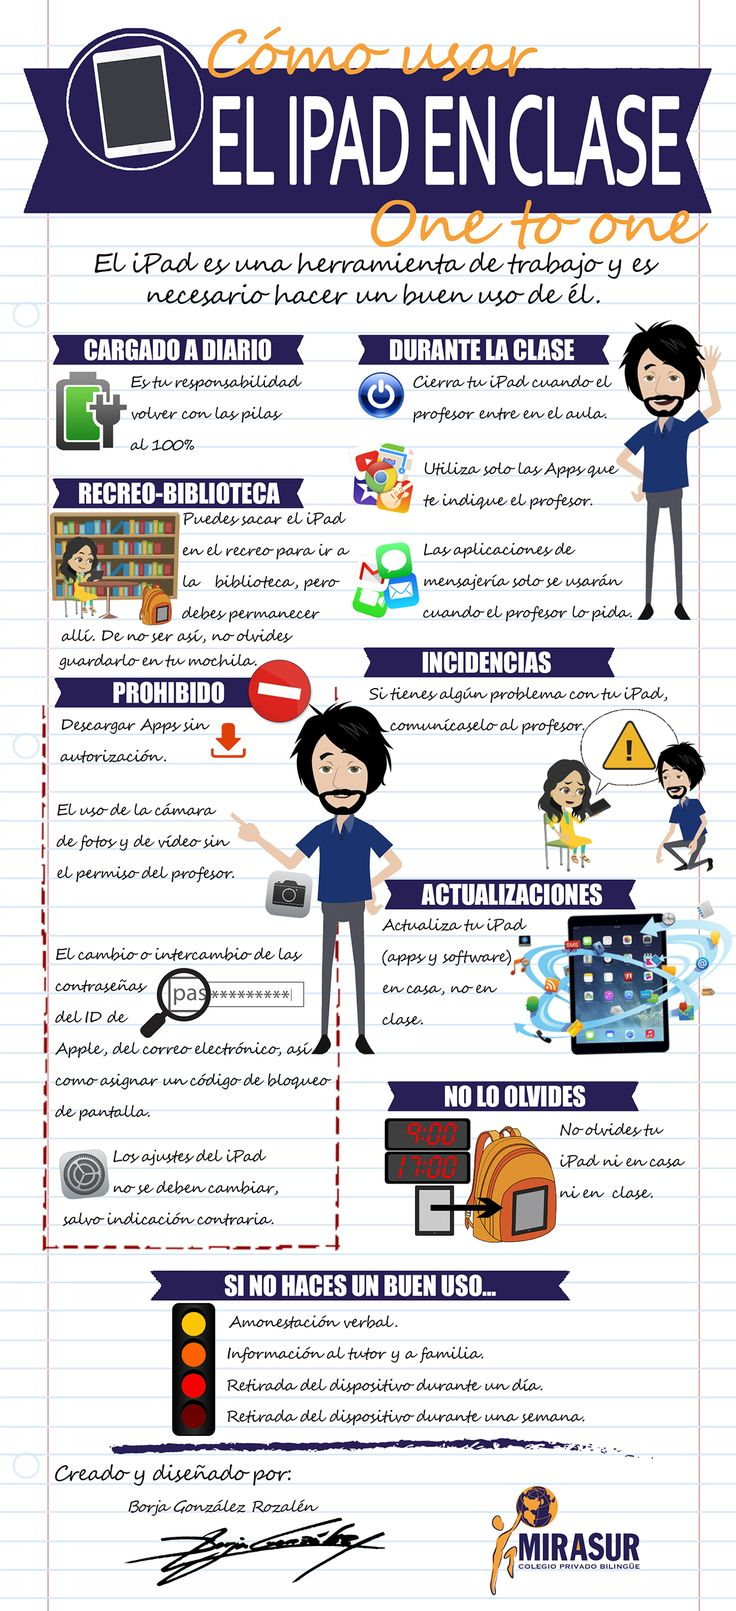 Infográfico sobre cómo usar el iPad en clase (One to one) - The Flipped Classroom